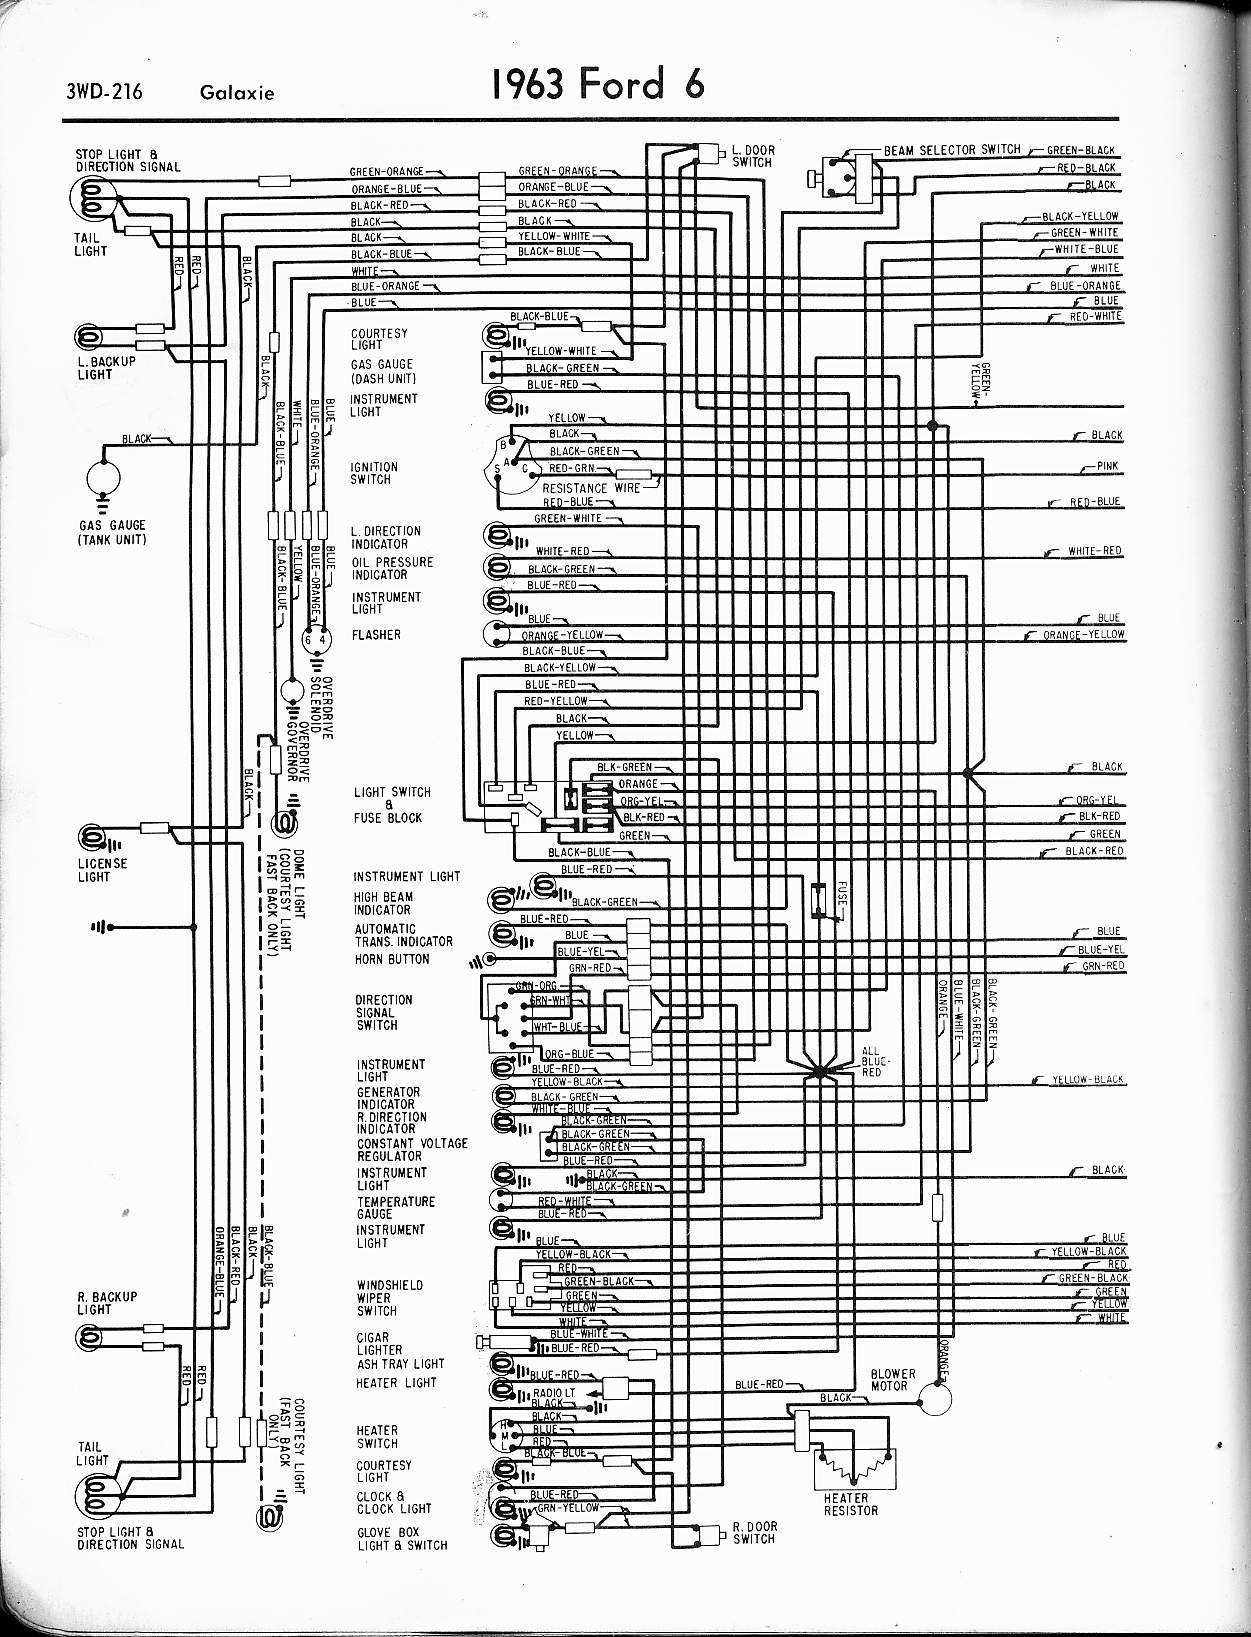 Rover 216 Wiring Diagram